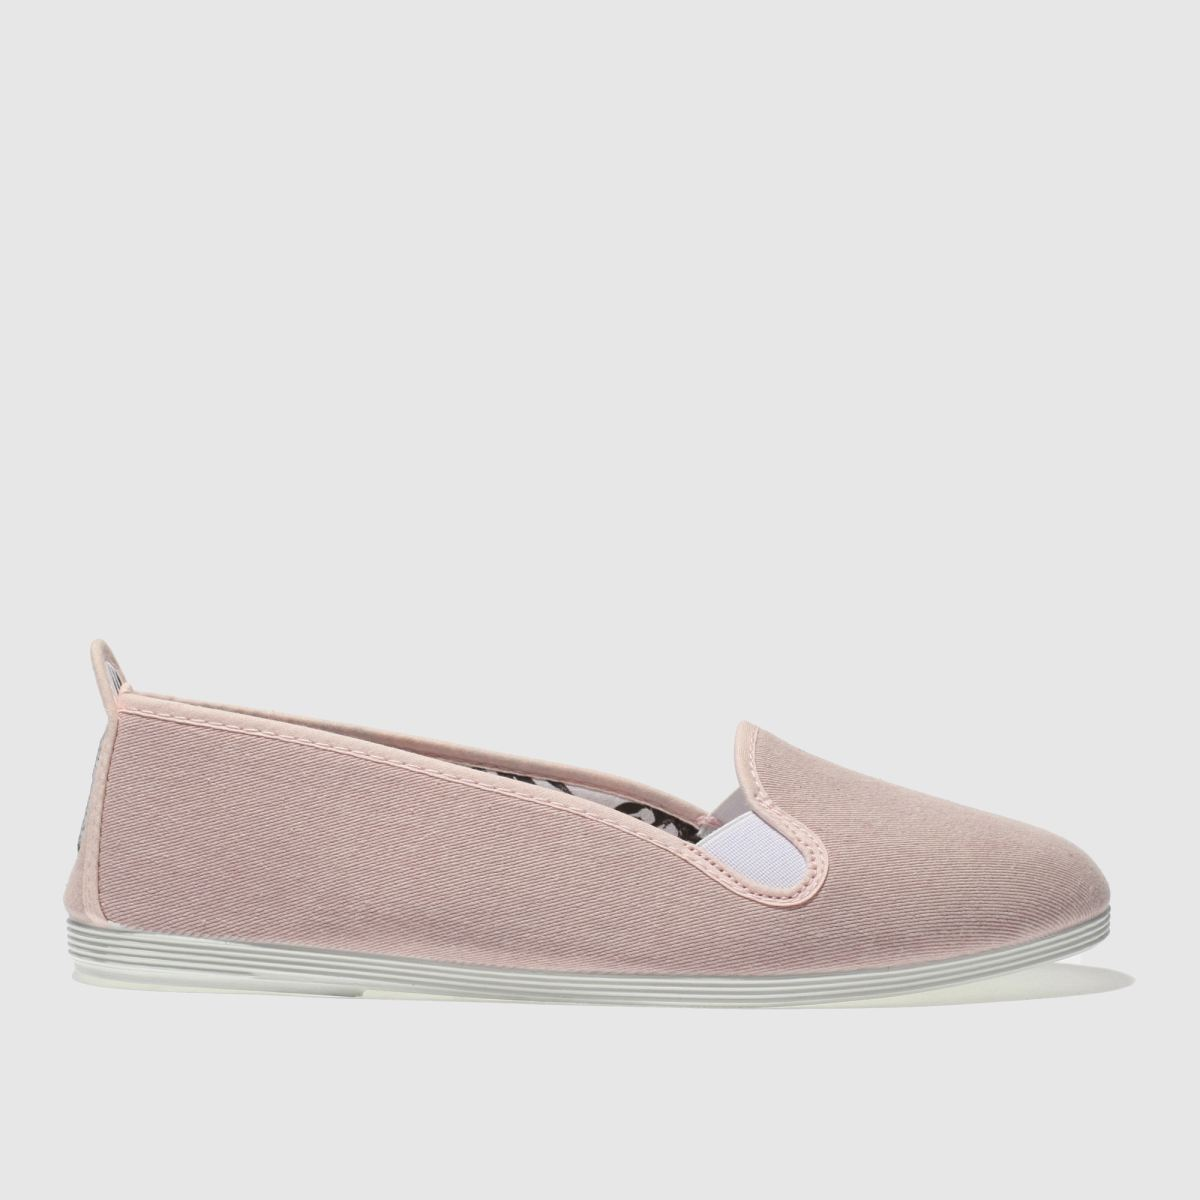 Flossy Flossy Pale Pink Mijas Flat Shoes